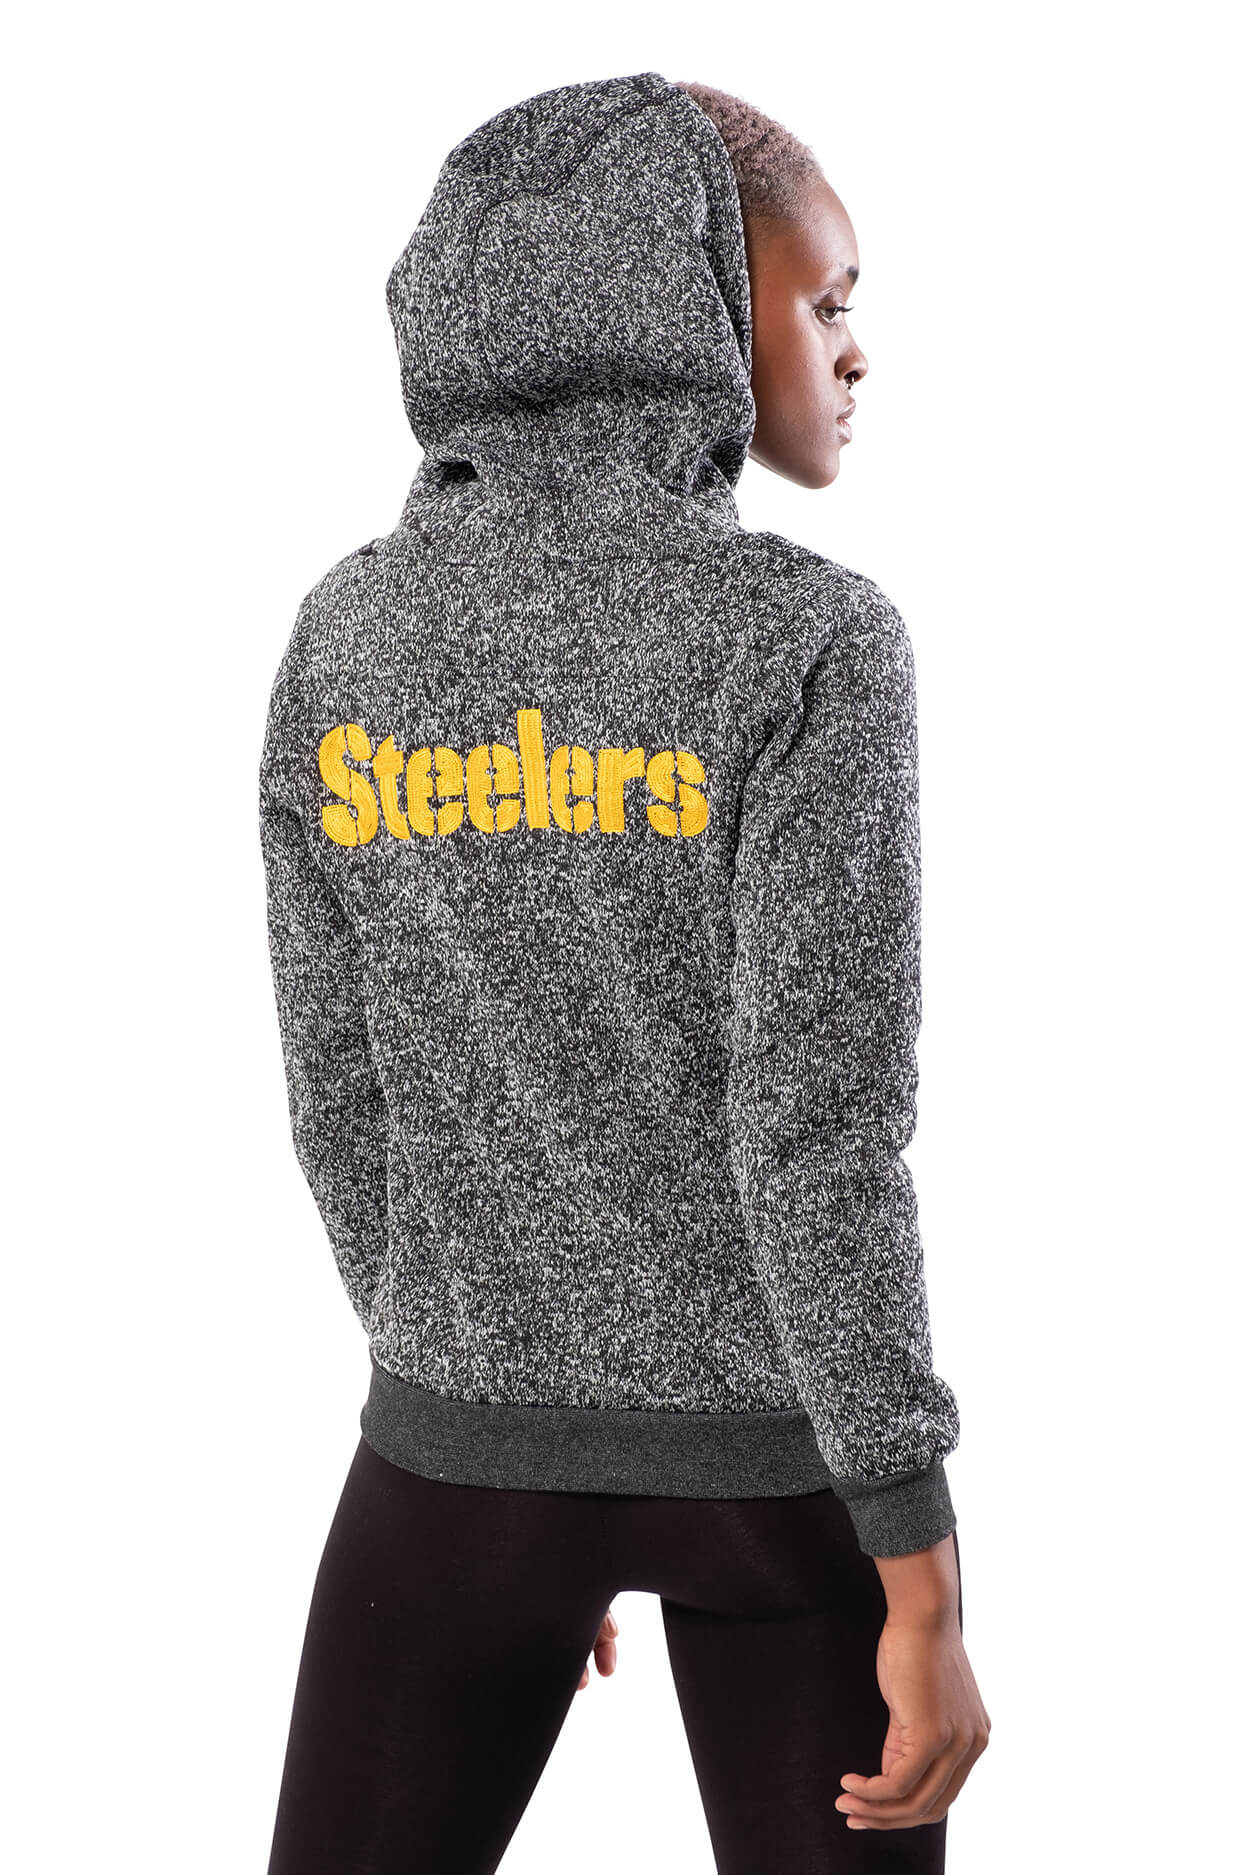 NFL Pittsburgh Steelers Women's Full Zip Hoodie|Pittsburgh Steelers